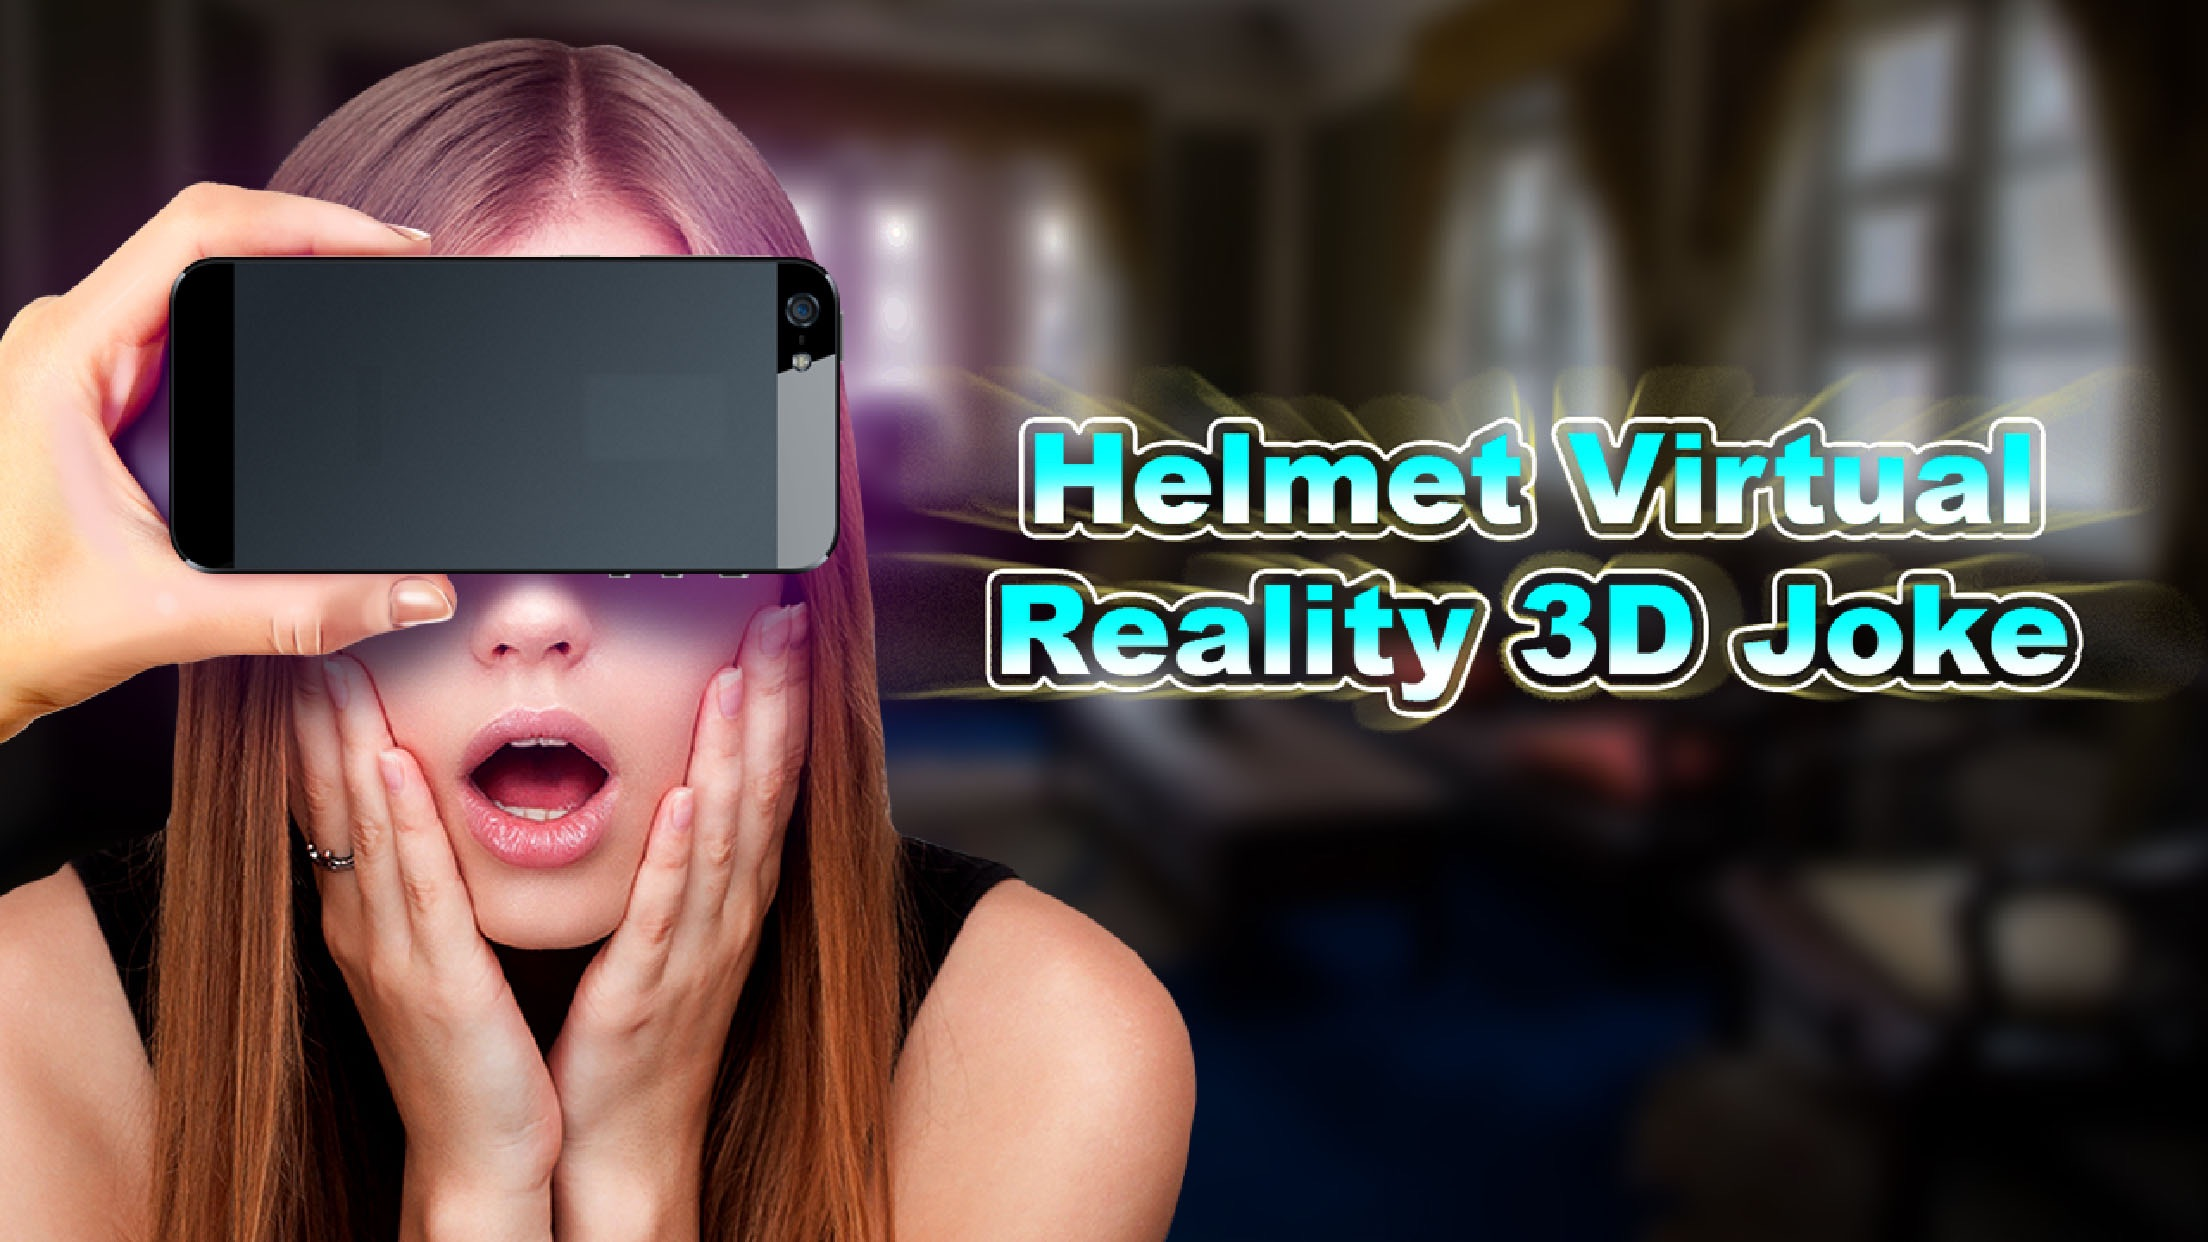 Helmet Virtual Reality 3D Joke Screenshot